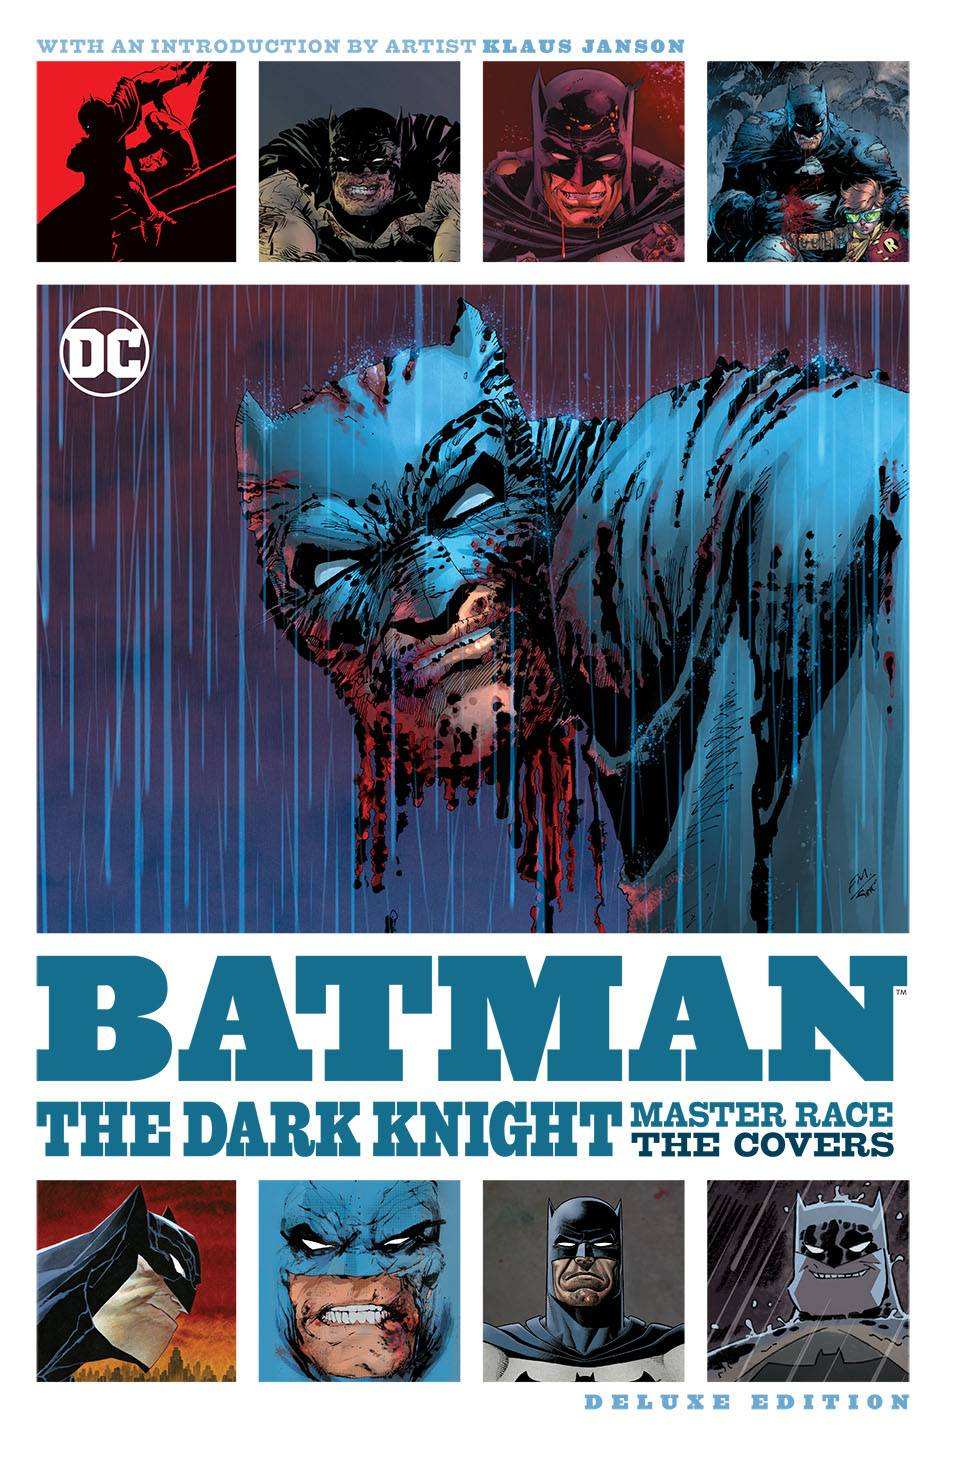 BATMAN DARK KNIGHT MASTER RACE COVERS DLX ED HC.jpg